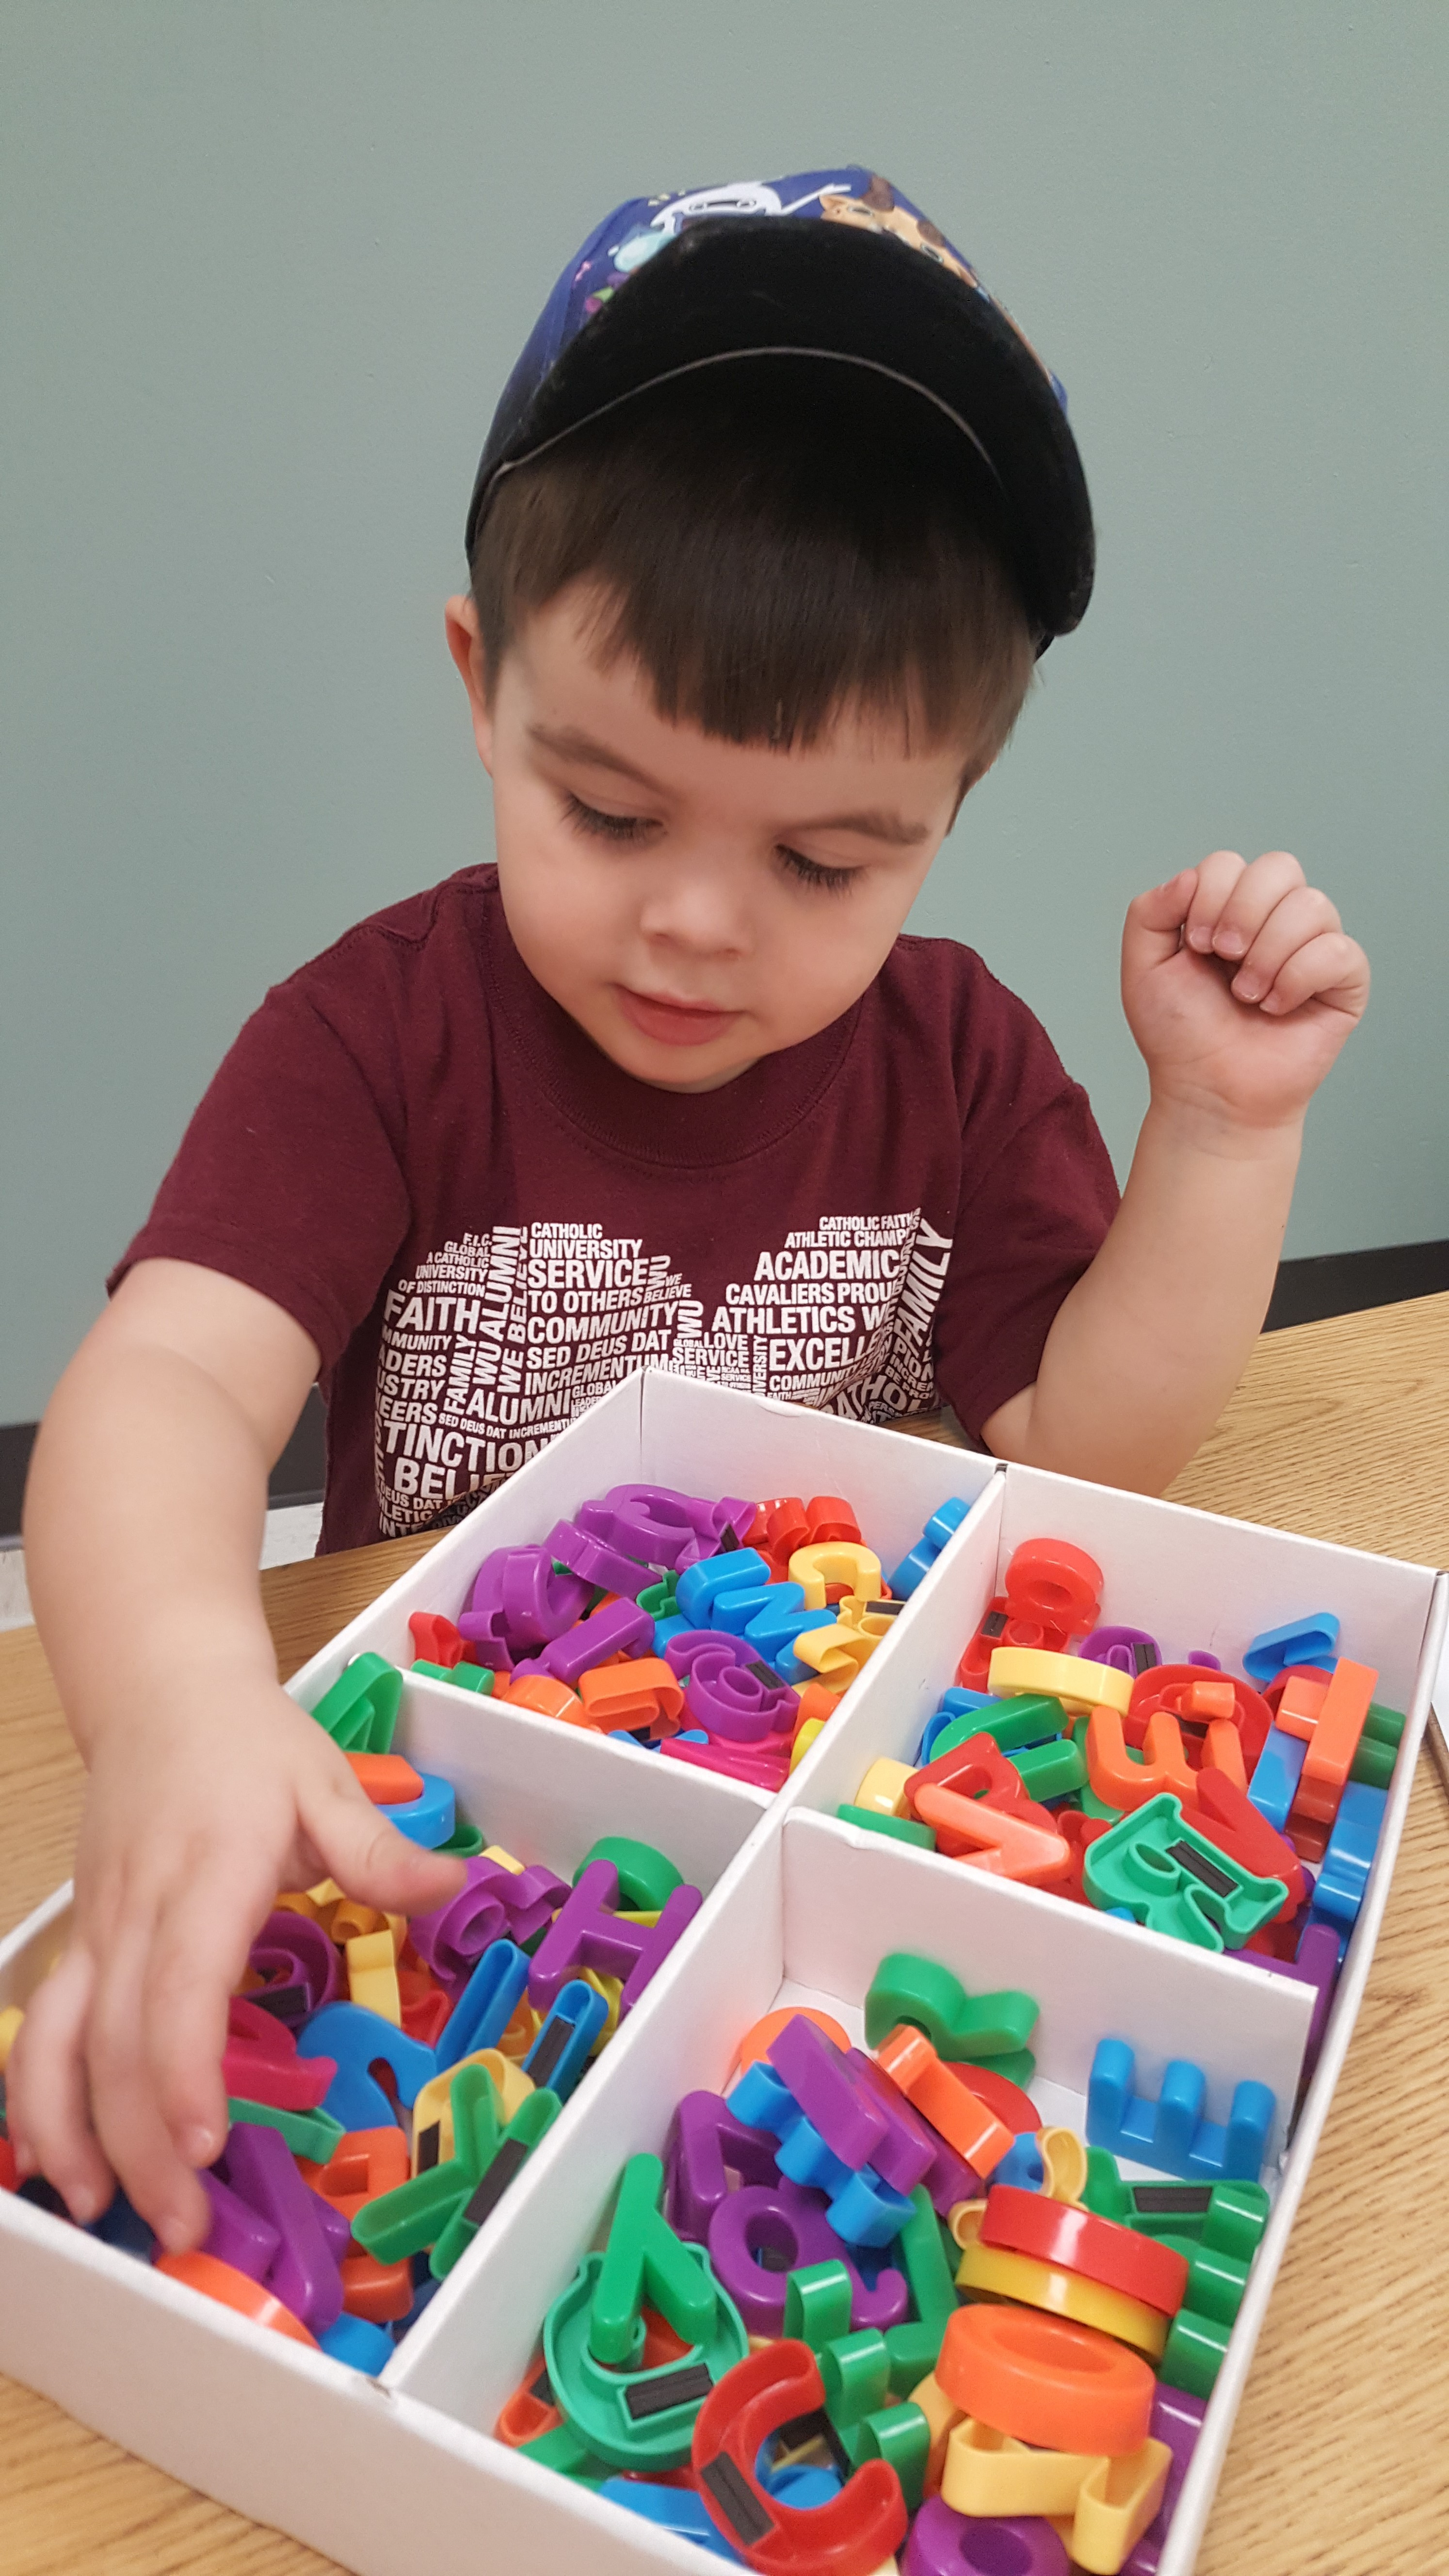 This child is enjoying his Phonics Adventure. He is working on letter recognition by fishing for the letter F!